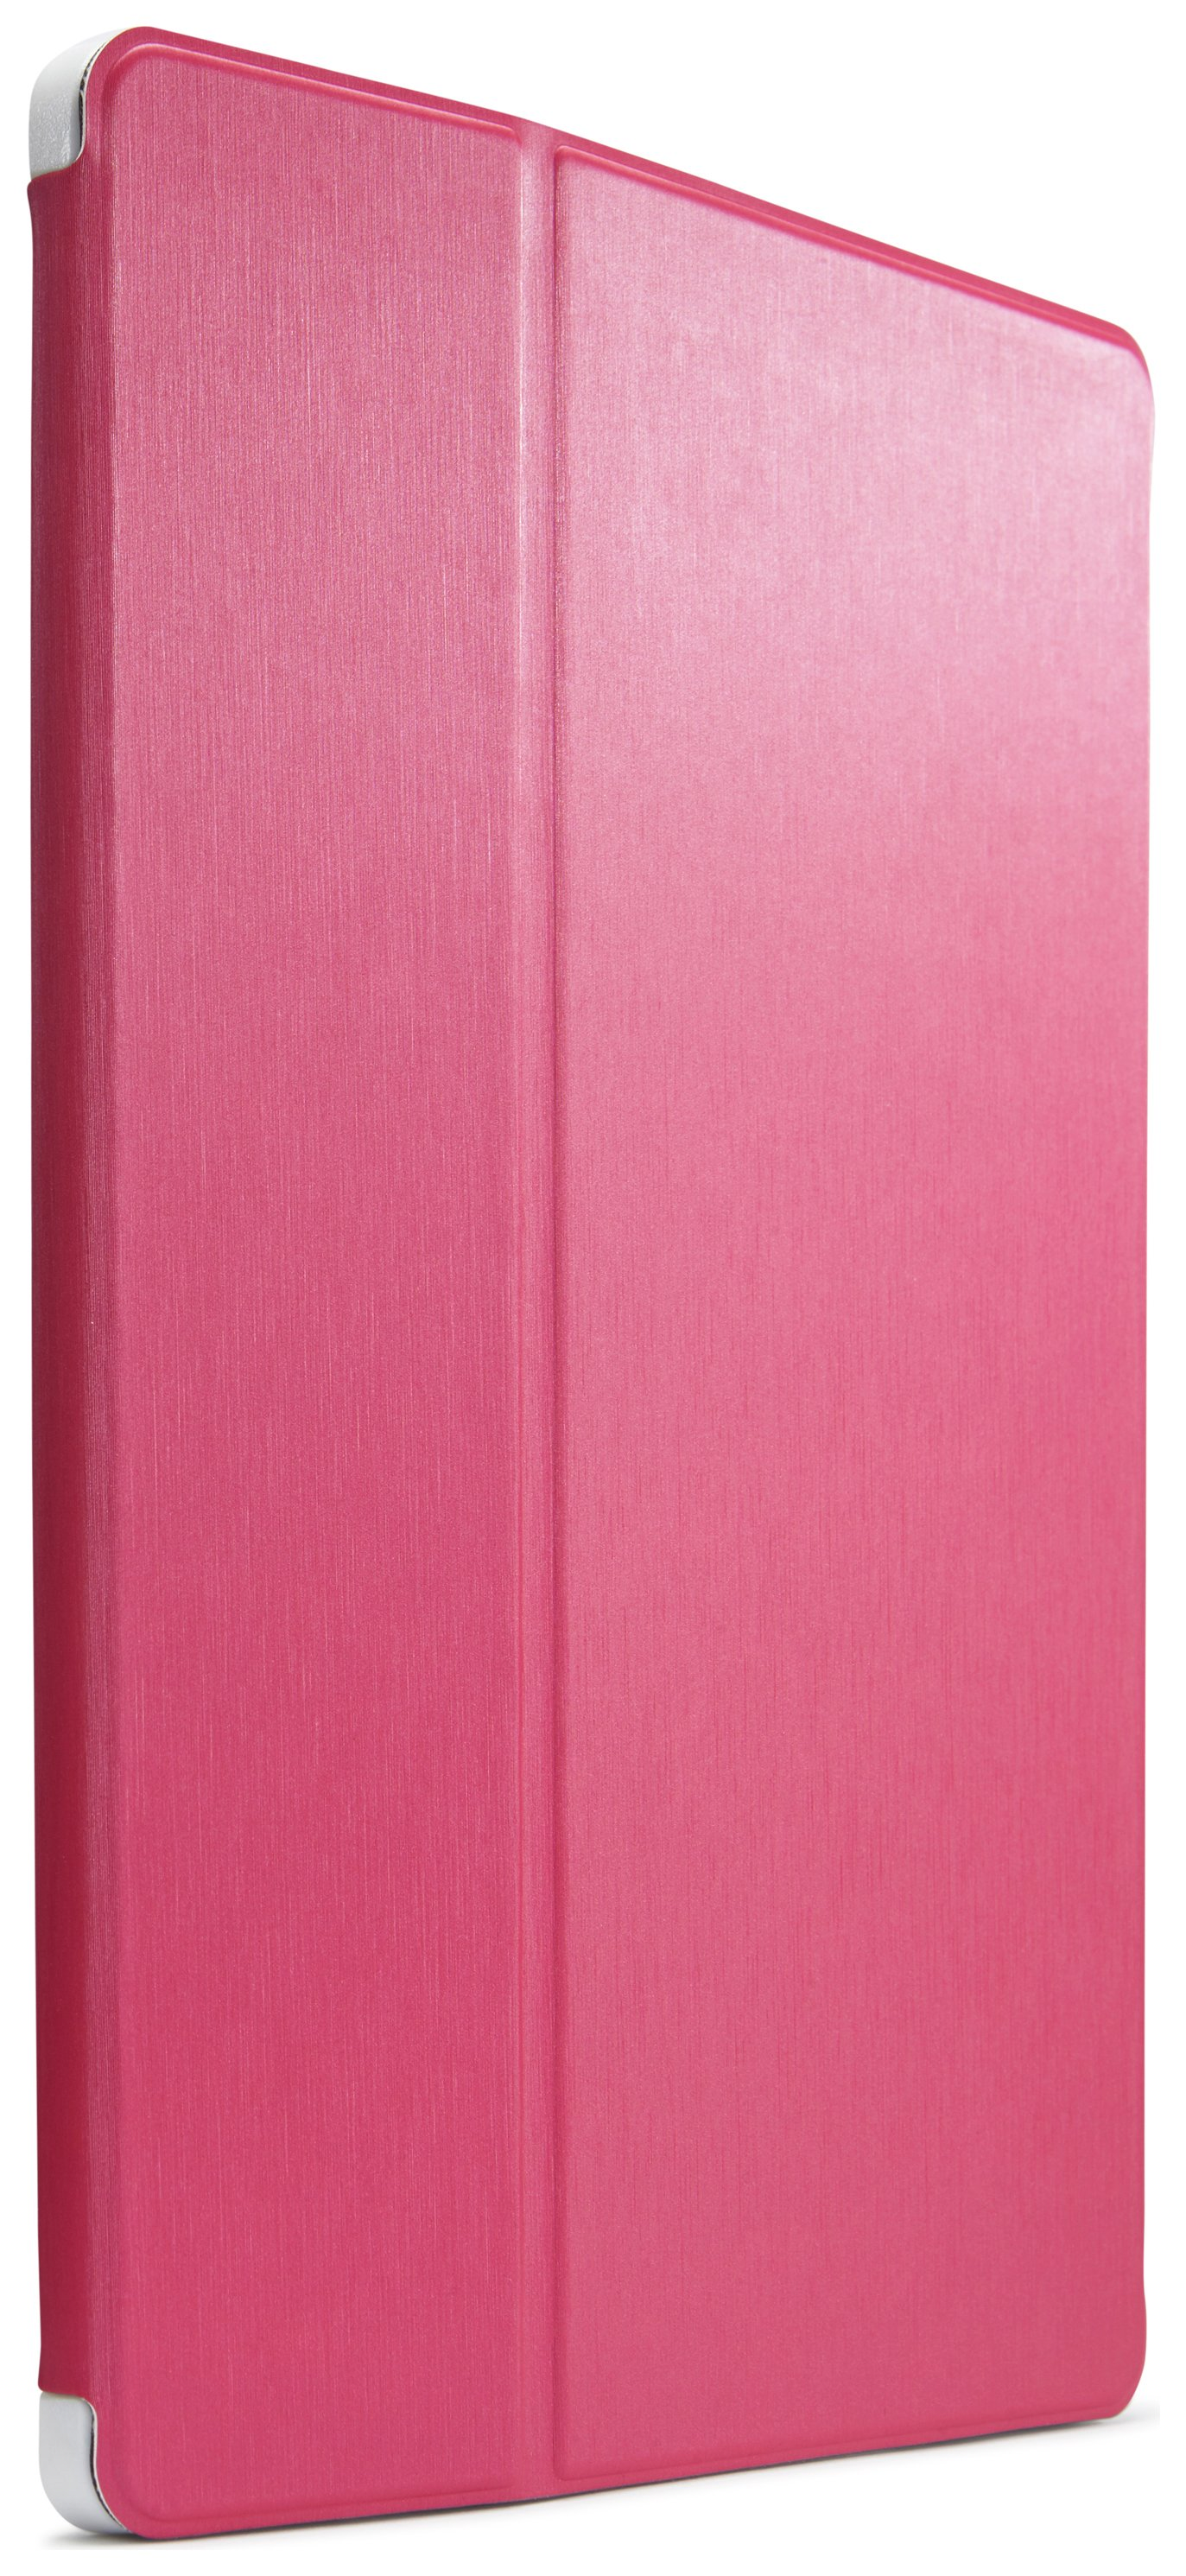 Case Logic SnapView 2.0 Case for iPad Air 2 - Pink.